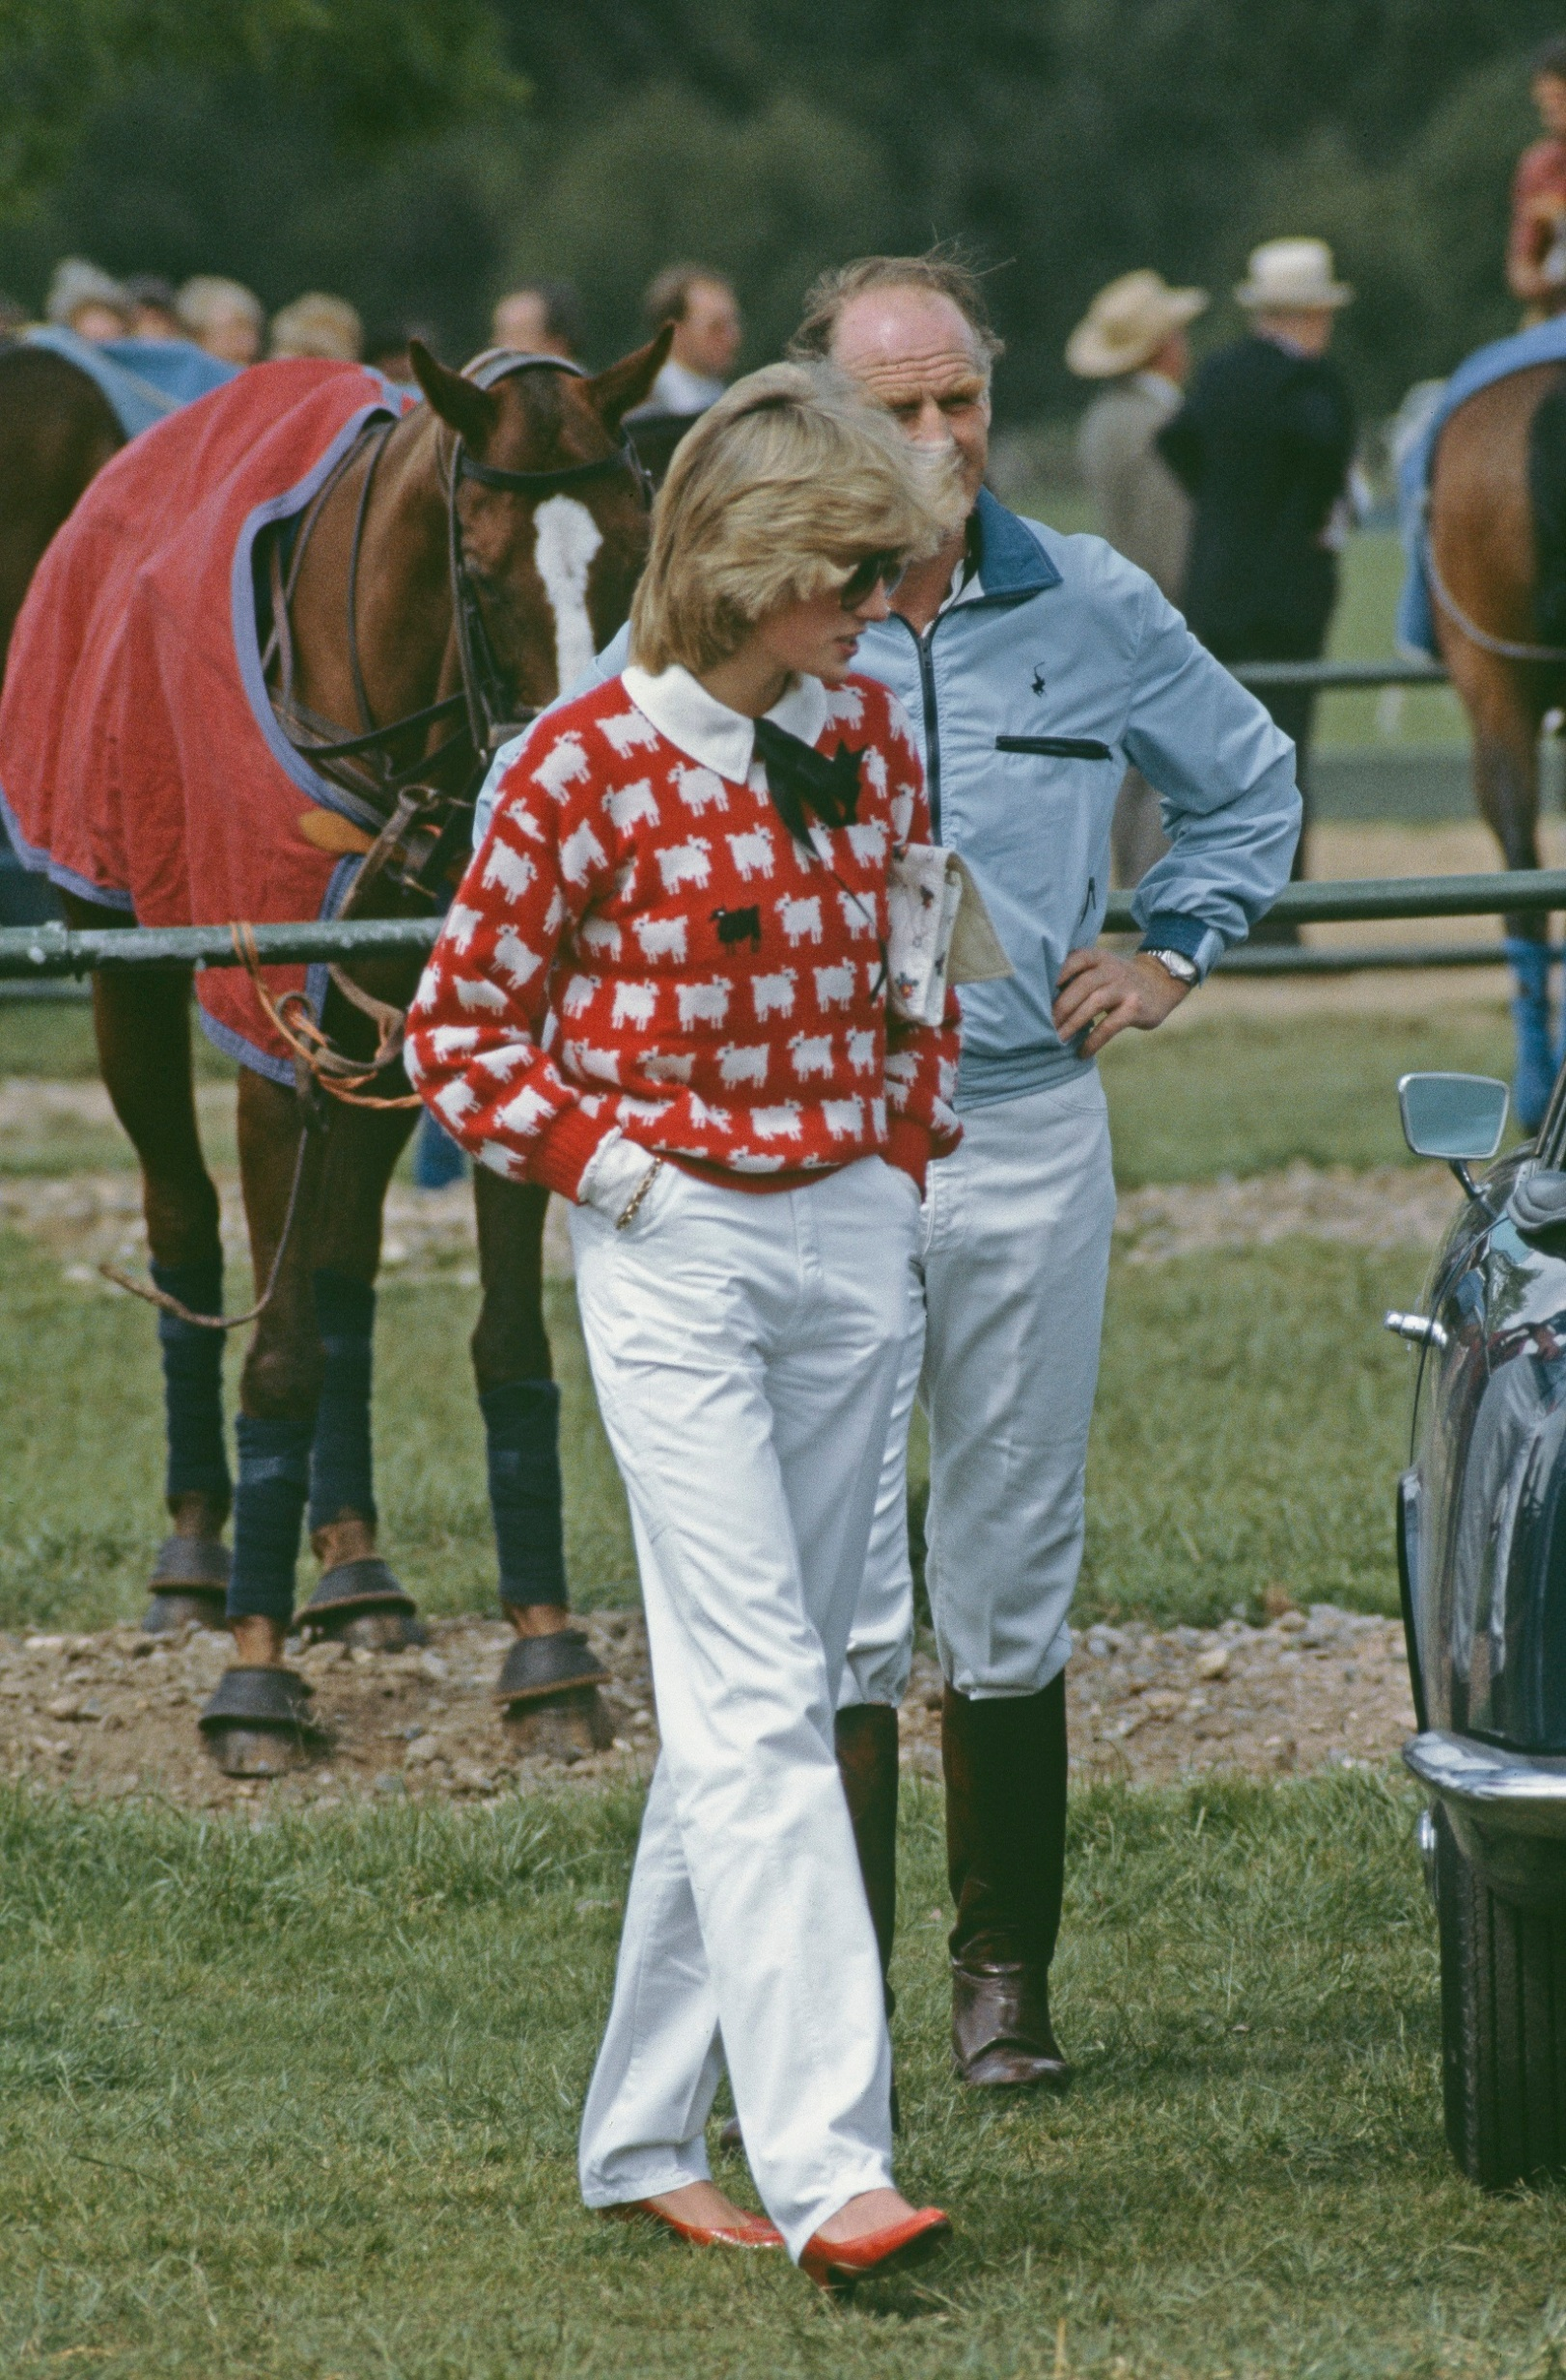 Diana, Princess of Wales  (1961 - 1997) with Major Ronald Ferguson (1931 - 2003) at a polo match at Smith's Lawn, Guards Polo Club, Windsor, June 1983. Diana is wearing a Muir and Osborne 'black sheep' sweater. (Photo by Princess Diana Archive/Getty Images)